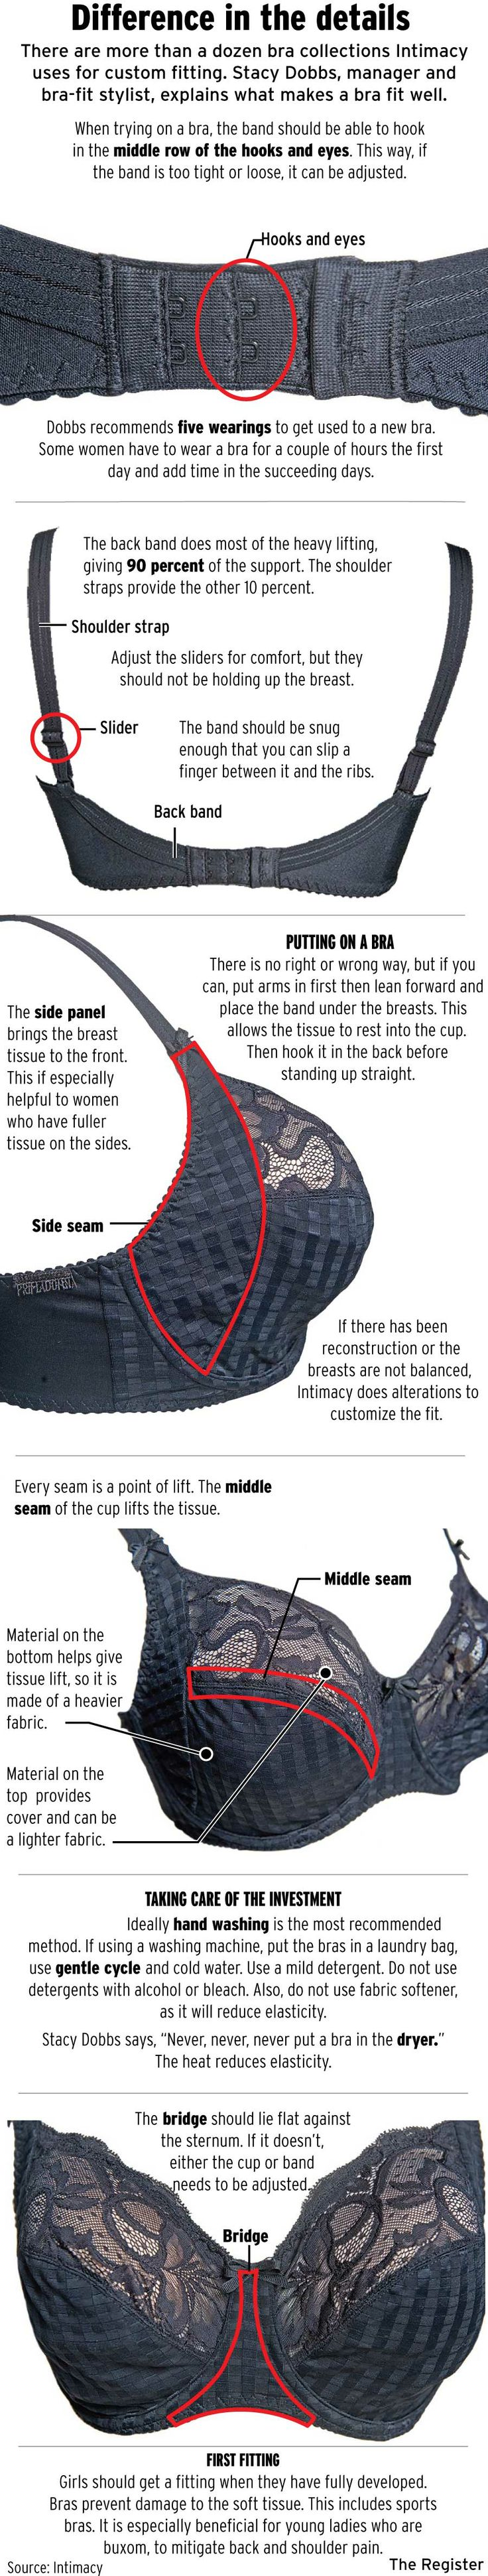 How European bras differ from American bras.